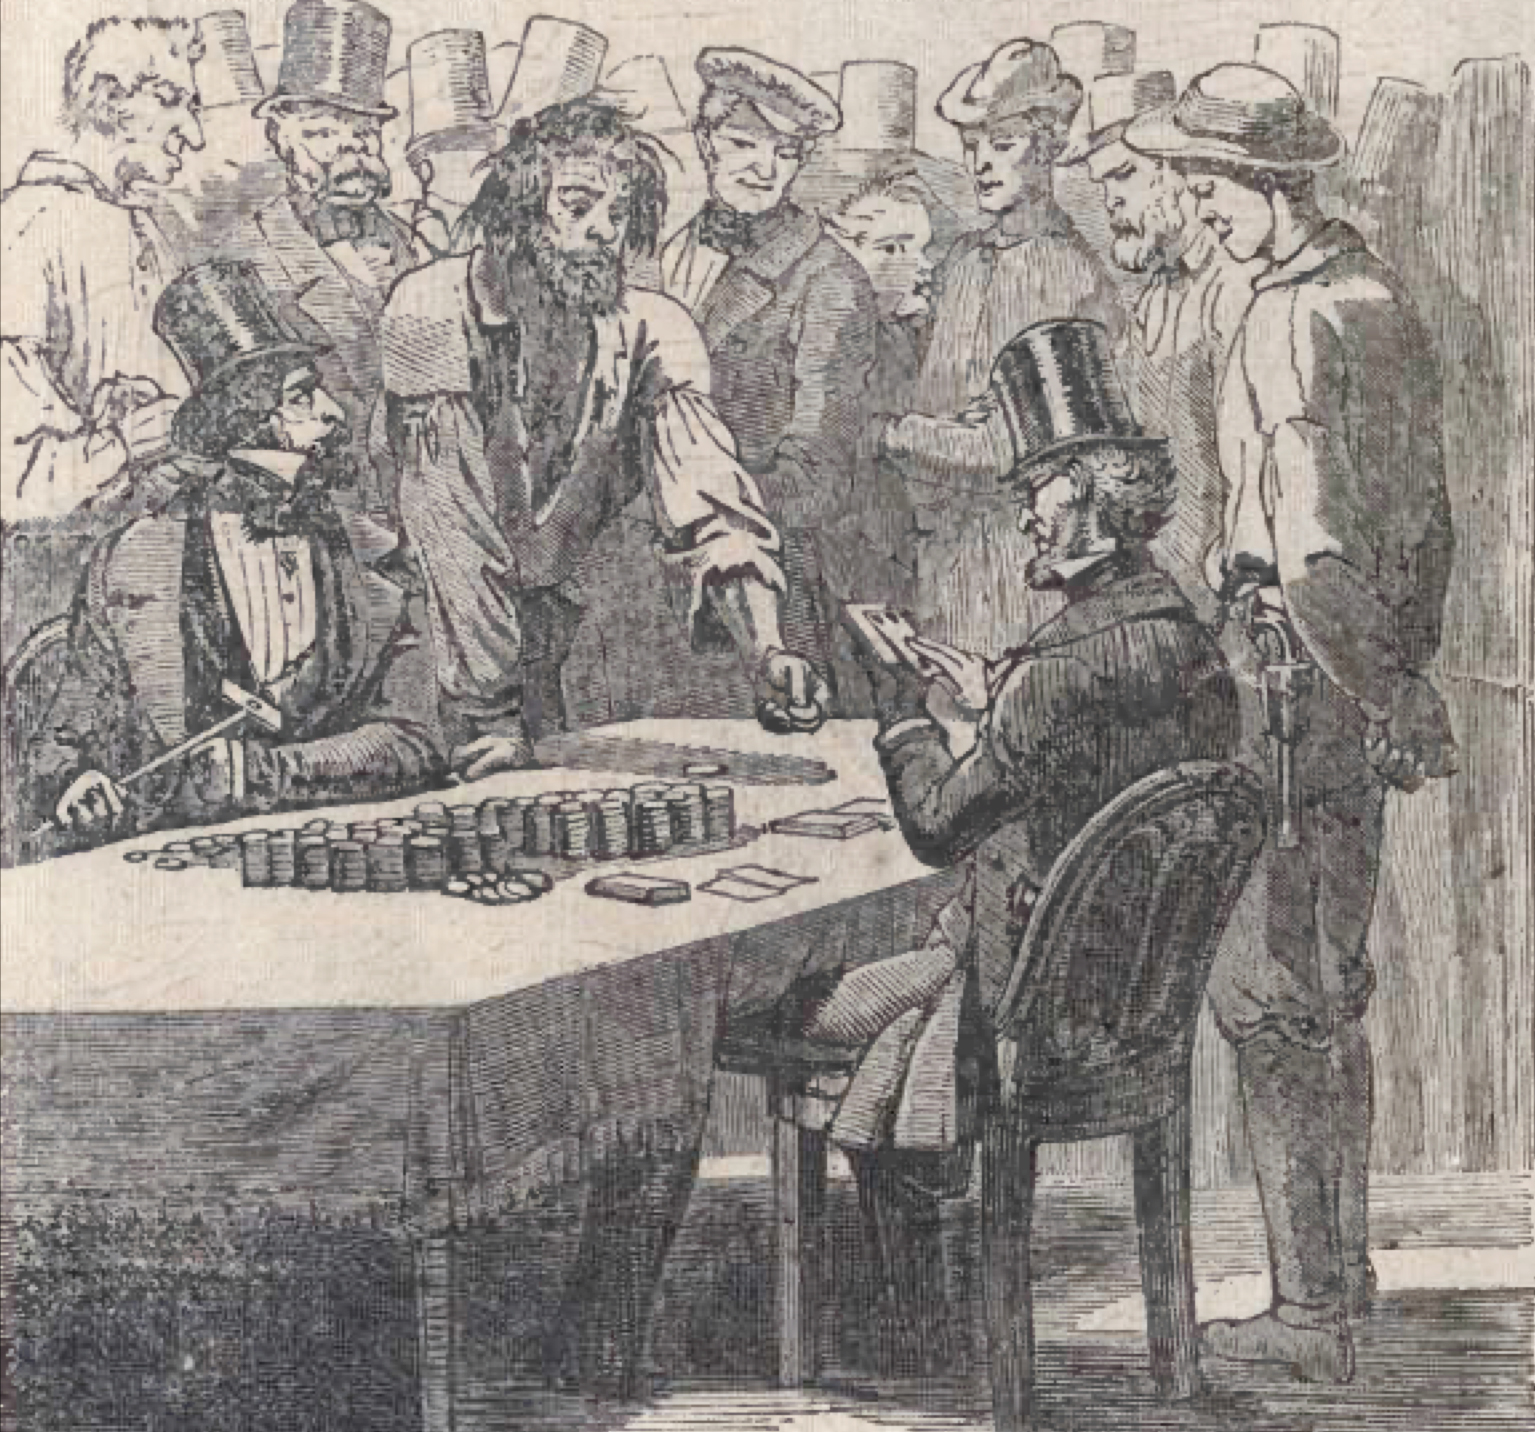 The idle miner loses all his money at the gambling tables.